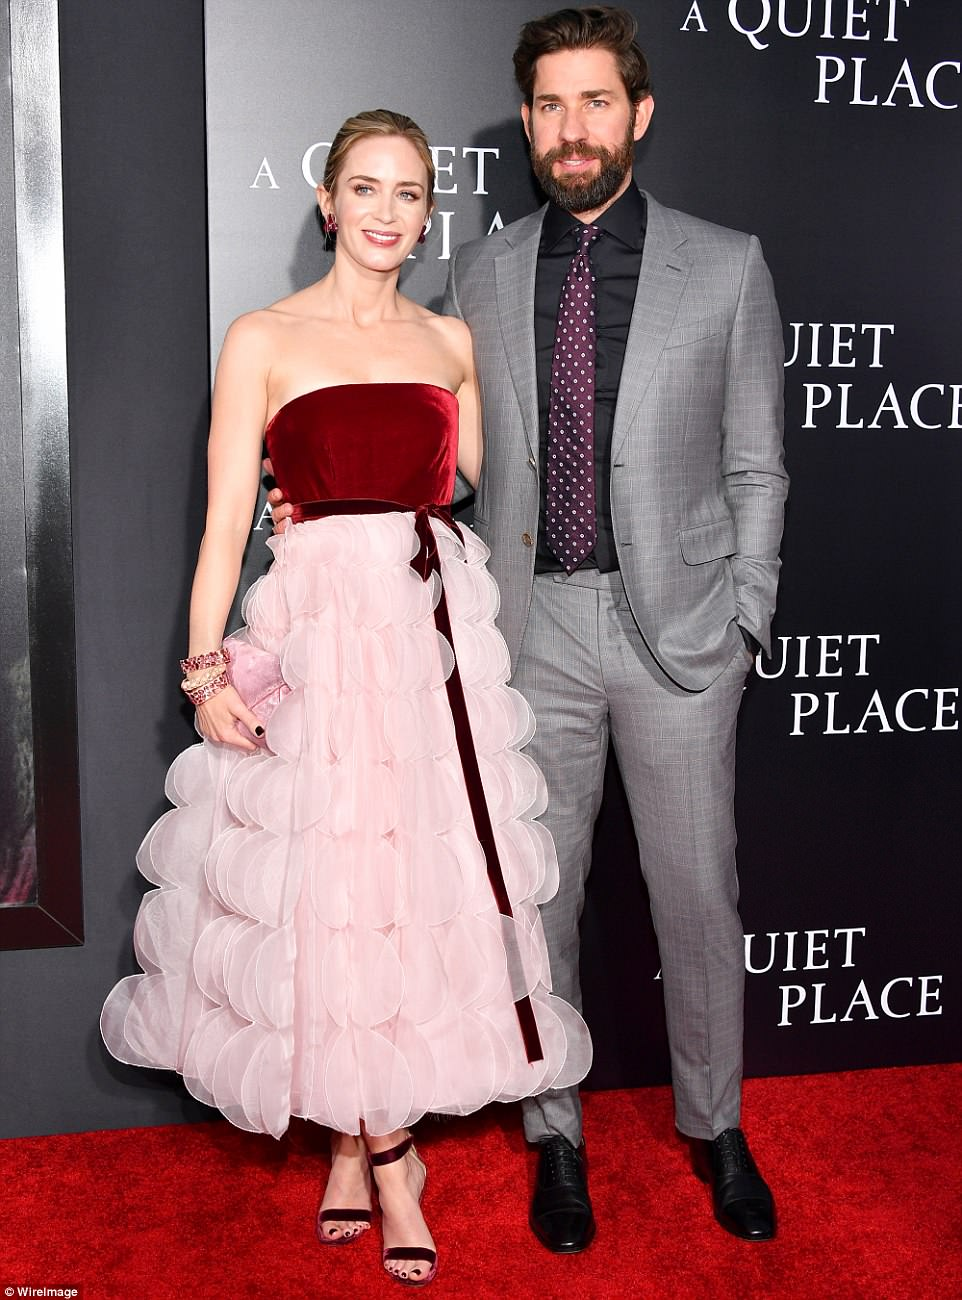 6e84af7f8b3402ba061f9bc7de047899 Emily Blunt and John Krasinski lead star-studded NYC premiere of A Quiet Place